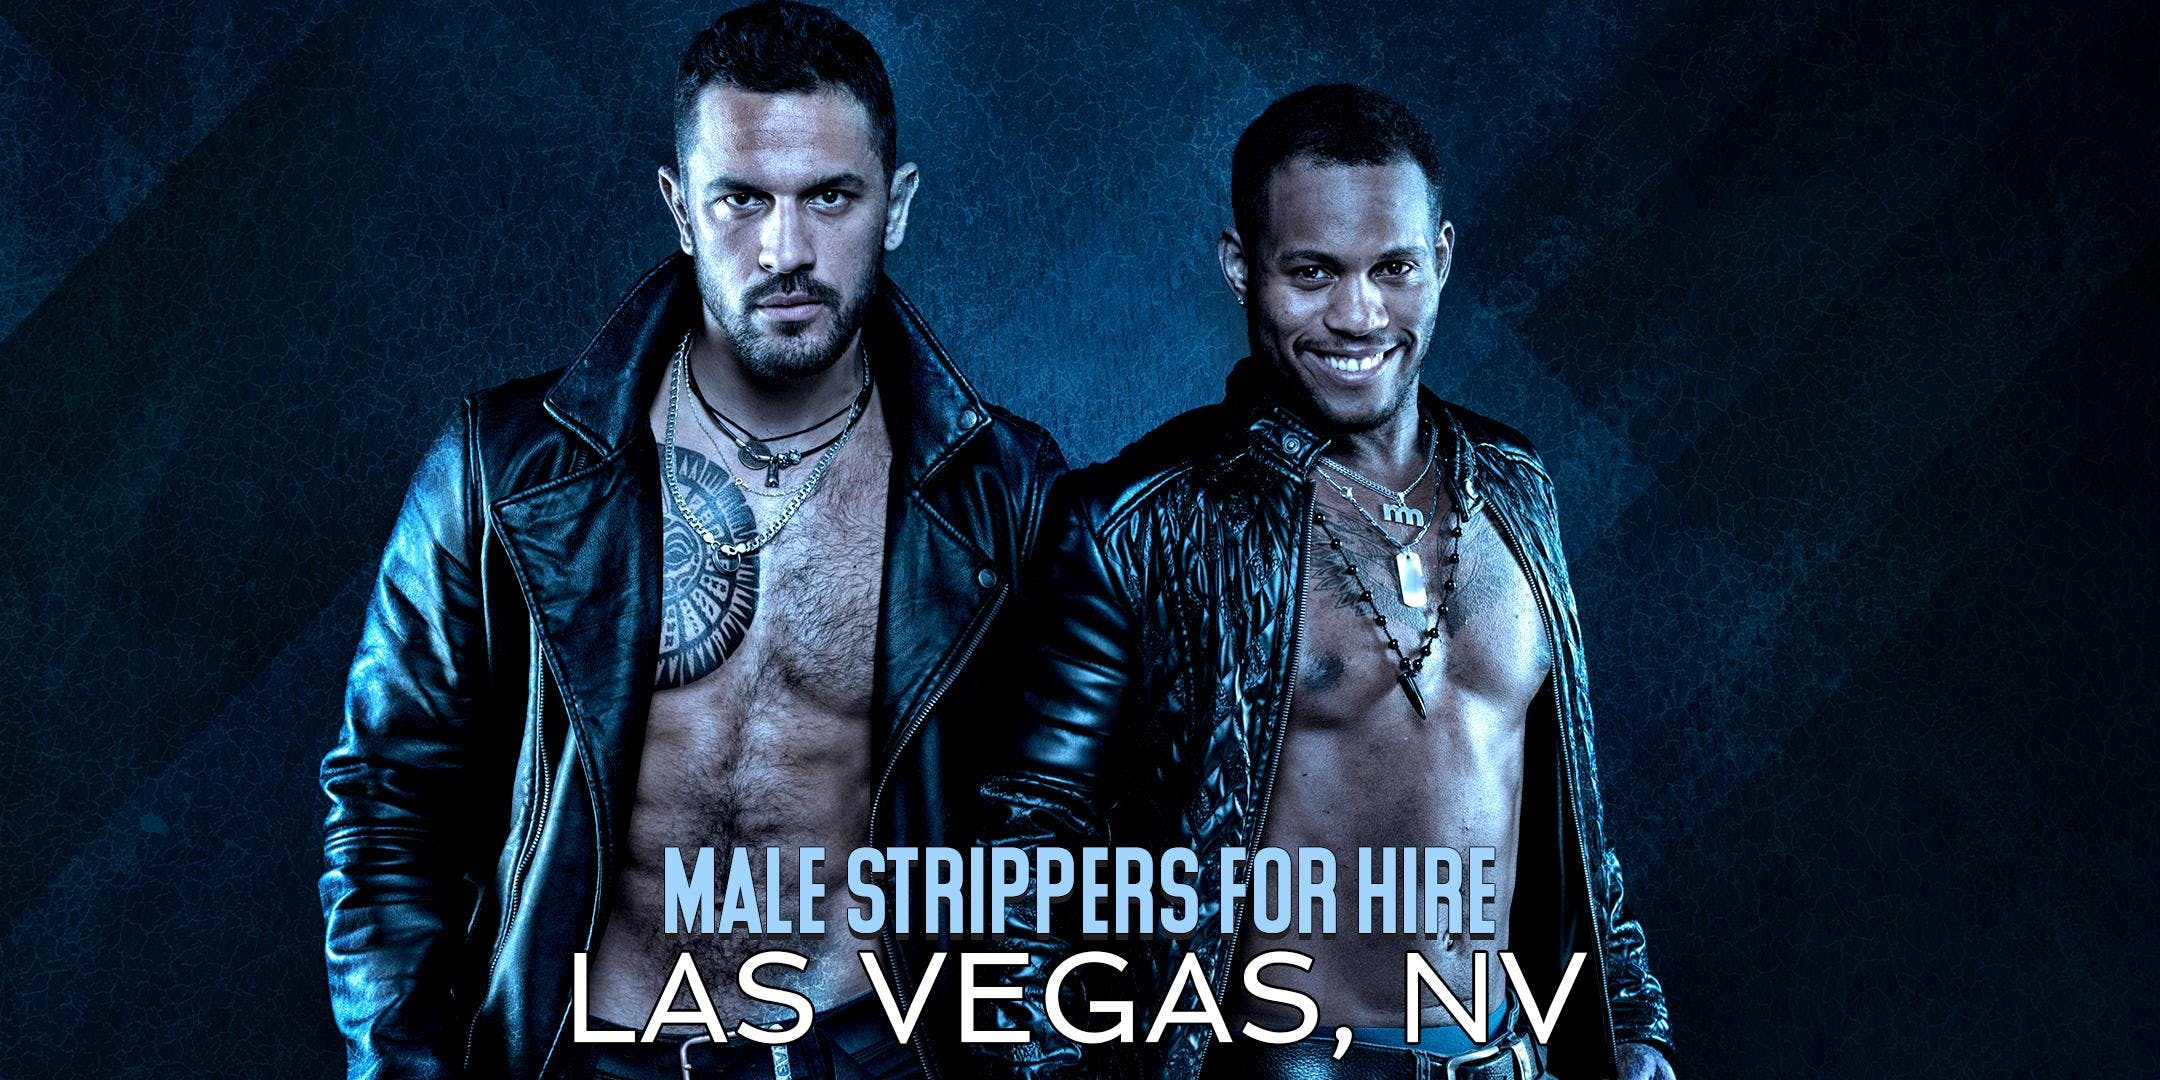 Hire a Male Stripper Las Vegas NV - Private Party Male Strippers for Hire Las  Vegas